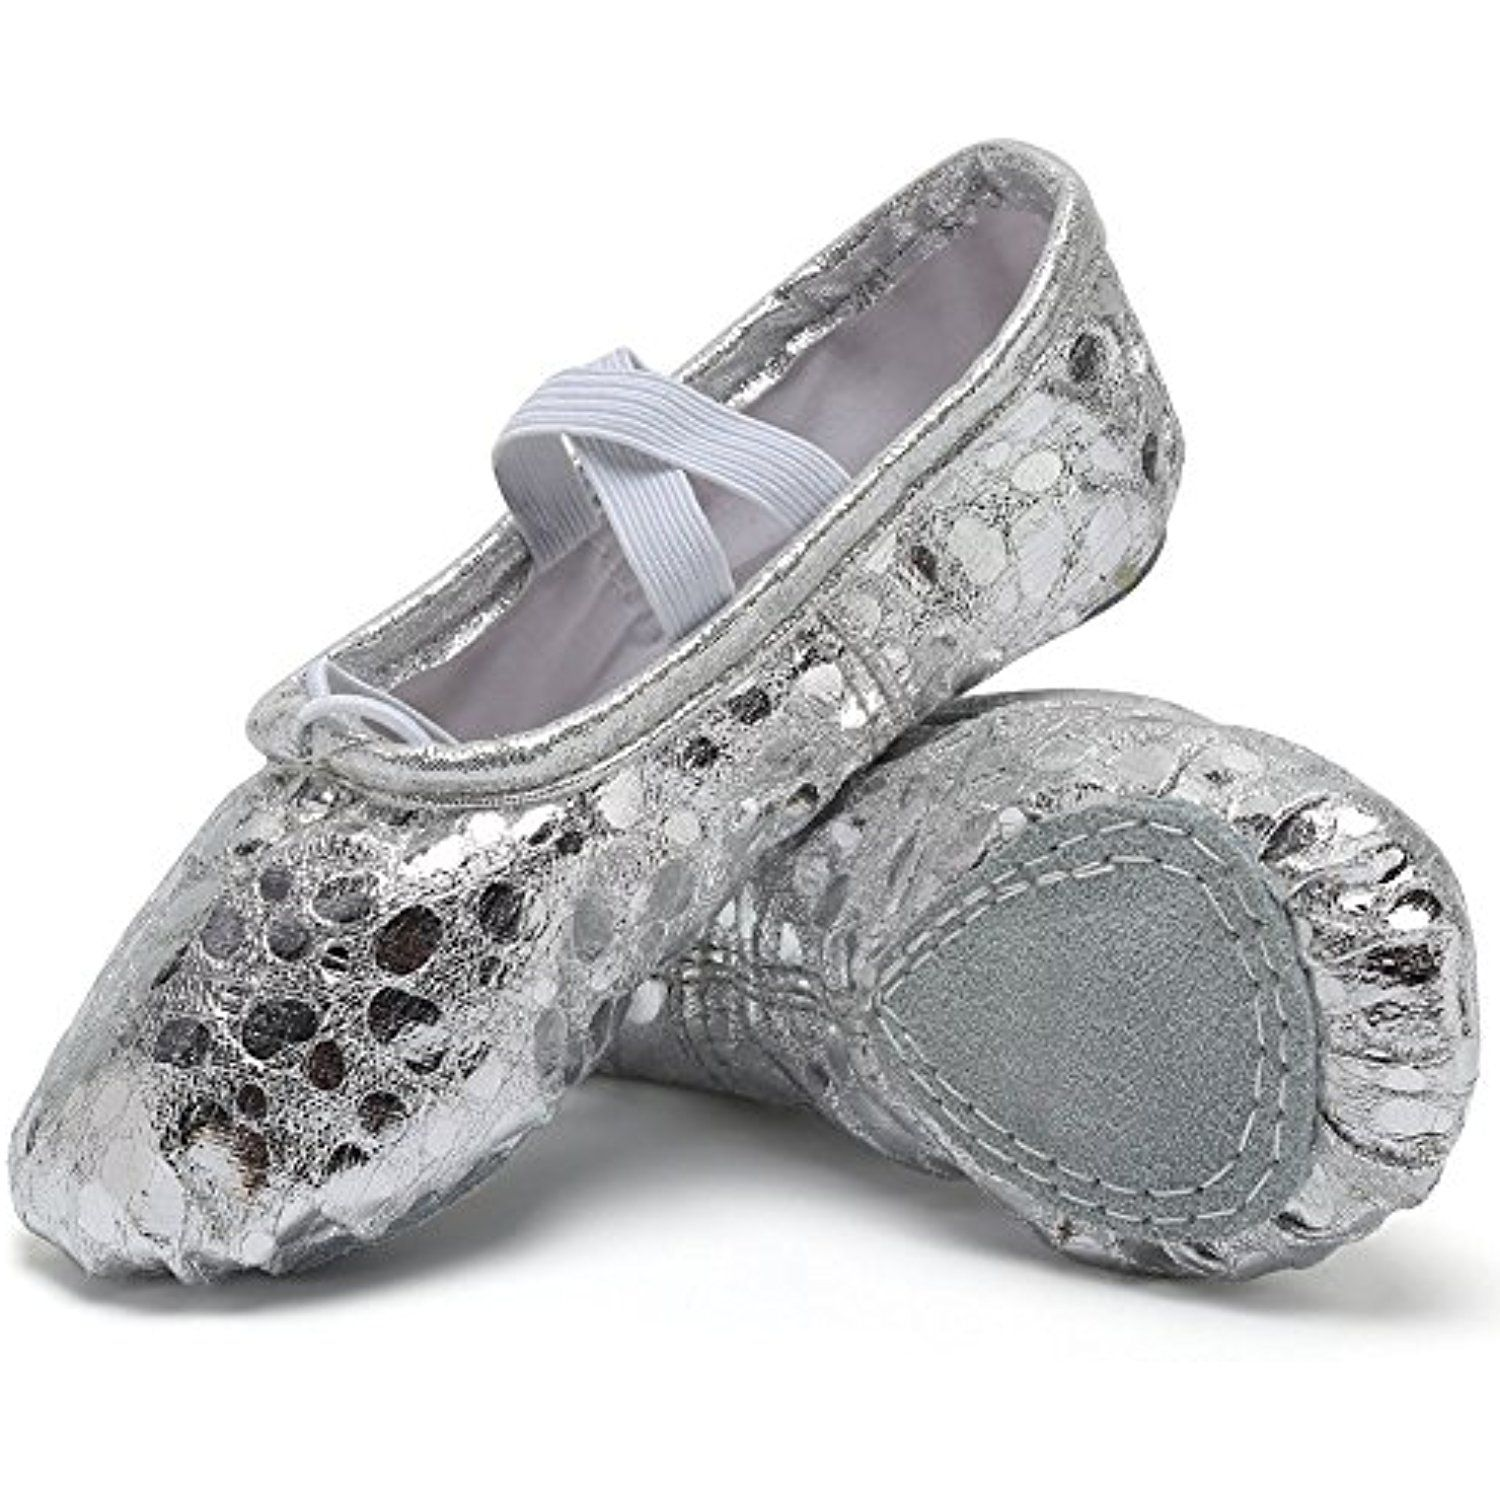 52f0f1ed0ef2d FANTINY PU Ballet Slippers for Girls Classic Split-Sole Dance ...